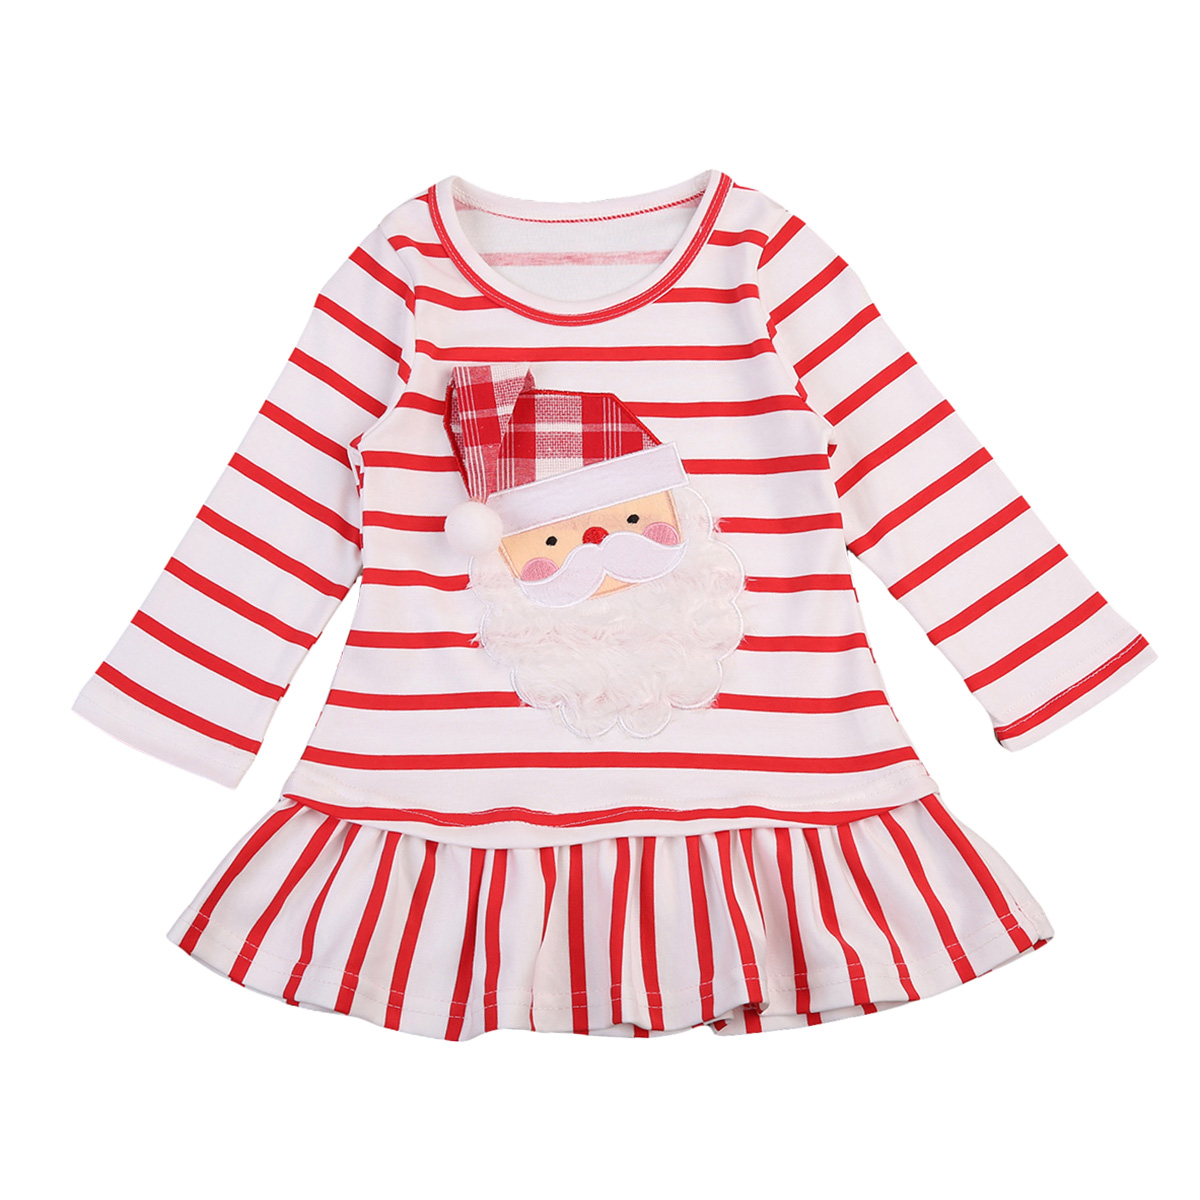 New Baby Girls Christmas Santa Claus Little Girls Cute Casual Xmas Striped Dress Clothes 0-5Y беспроводная зарядная панель tronsmart wc01 airamp wireless fast charger black